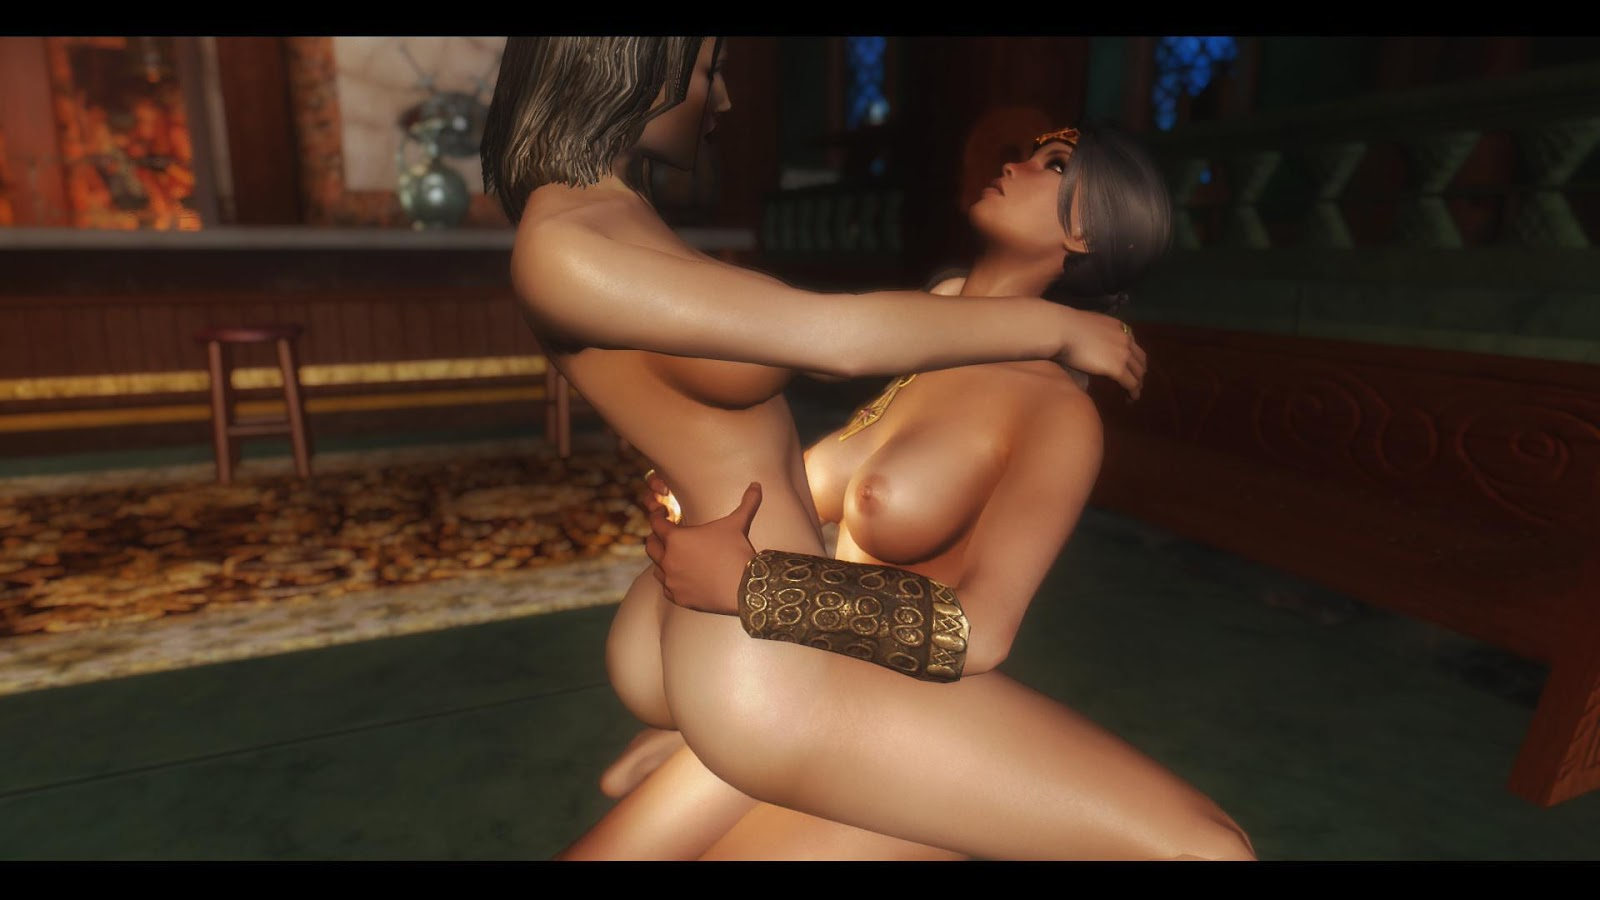 Mod sex video 3gp naked clip